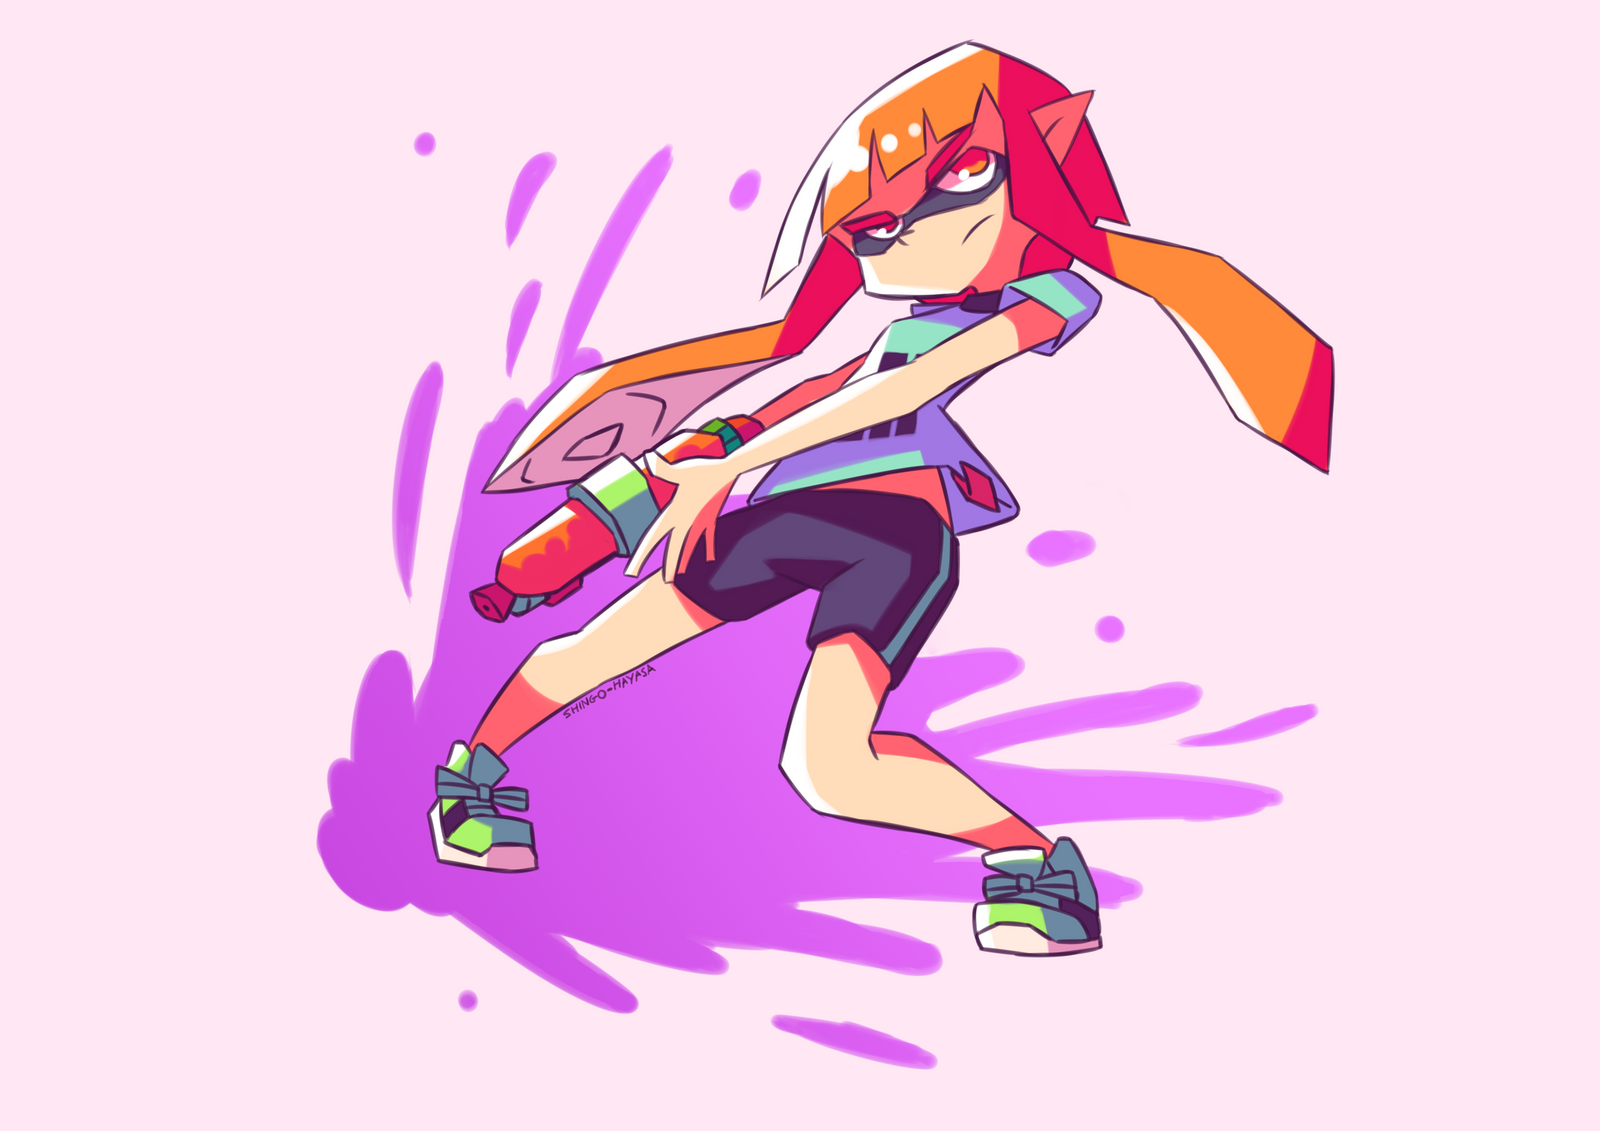 how to make a drawing in splatoon 2